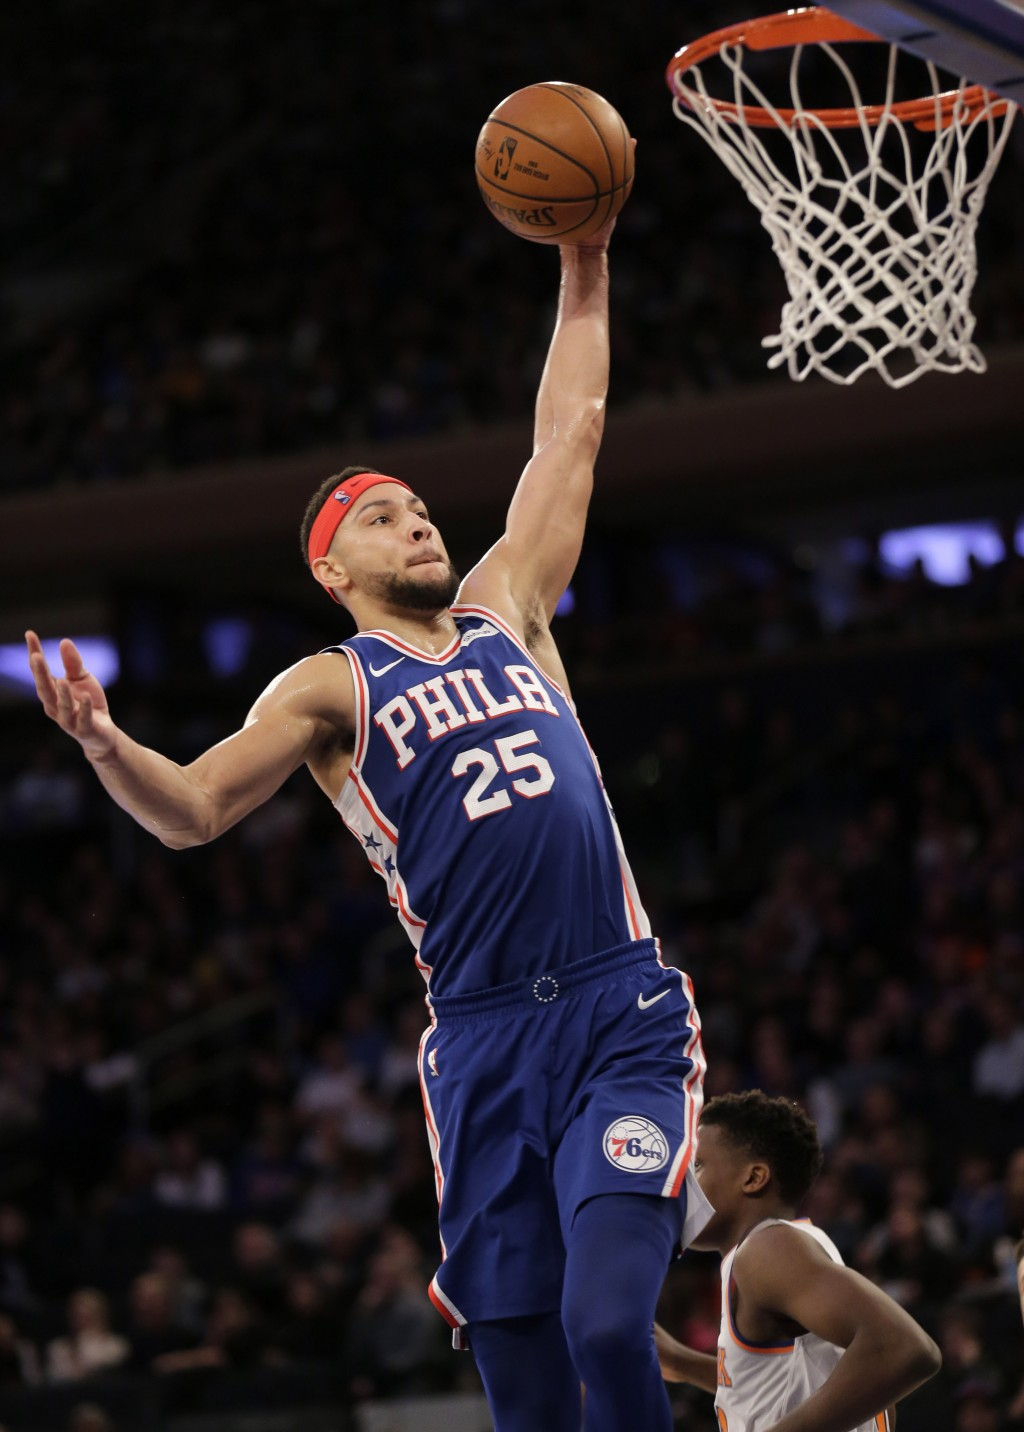 Philadelphia 76ers' Ben Simmons jumps to the basket during the first half of an NBA basketball game against the New York Knicks, Sunday, Jan. 13, 2019